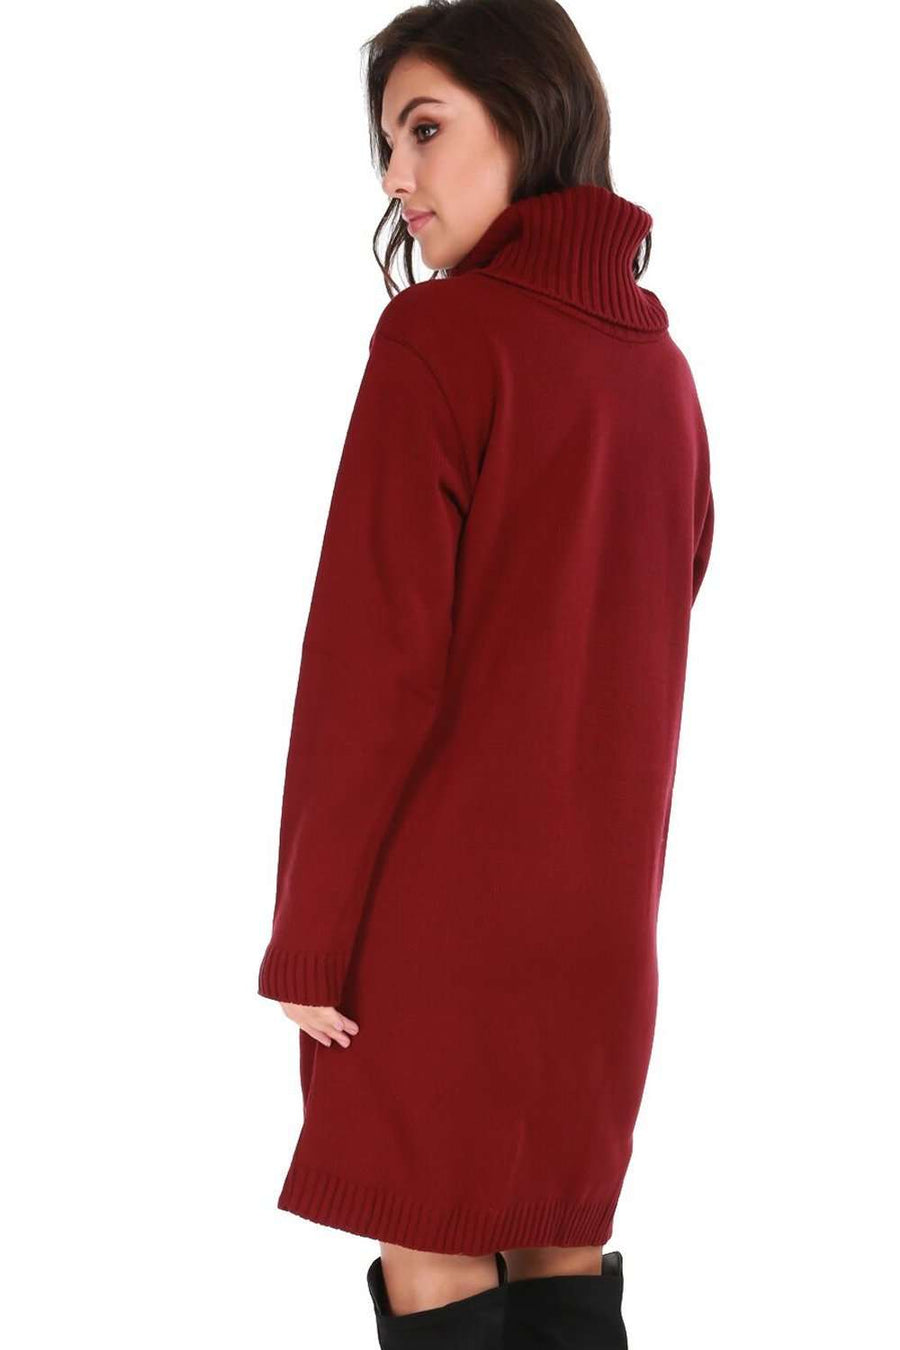 Darcie Roll Neck Knitted Jumper Dress - bejealous-com